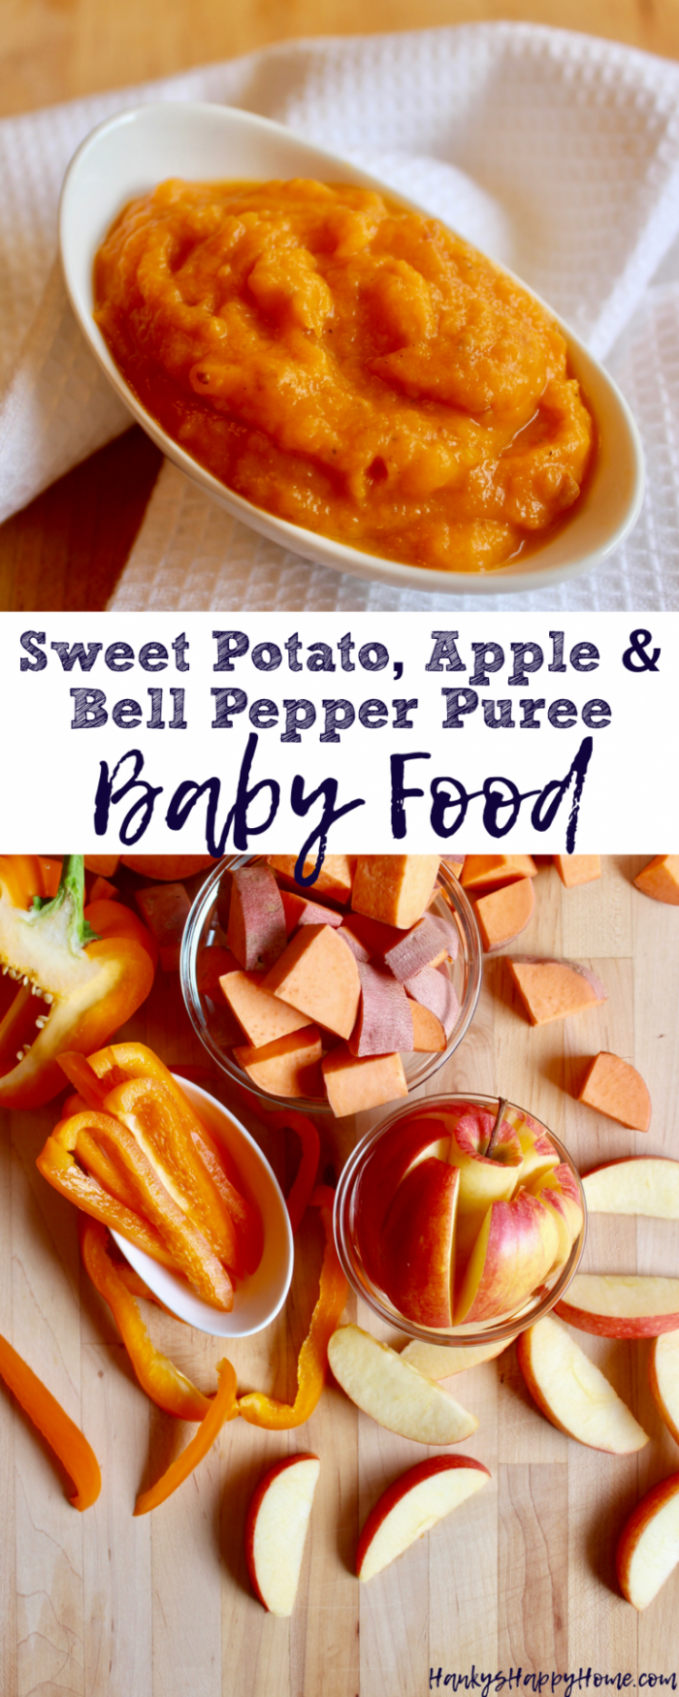 15 Simple SWEET POTATO Baby Food Recipes | The most reliable ..